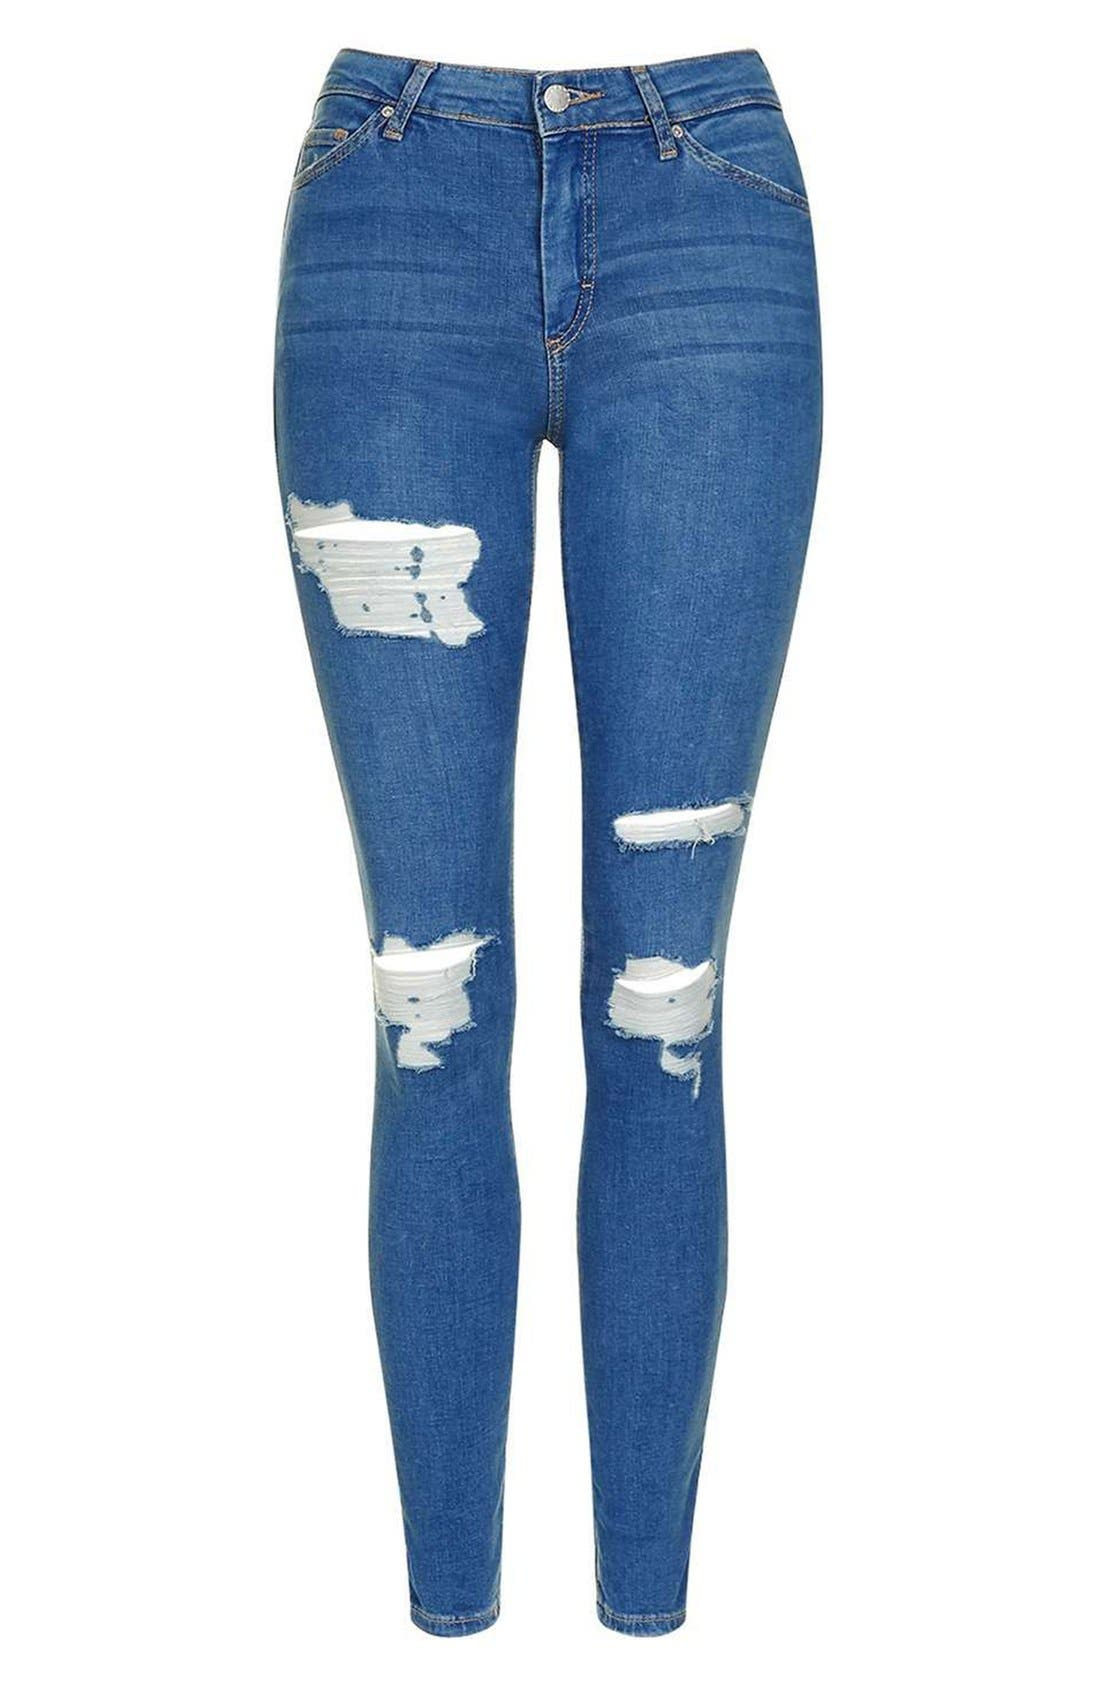 TOPSHOP, Moto Leigh Super Ripped Ankle Skinny Jeans, Alternate thumbnail 4, color, 400